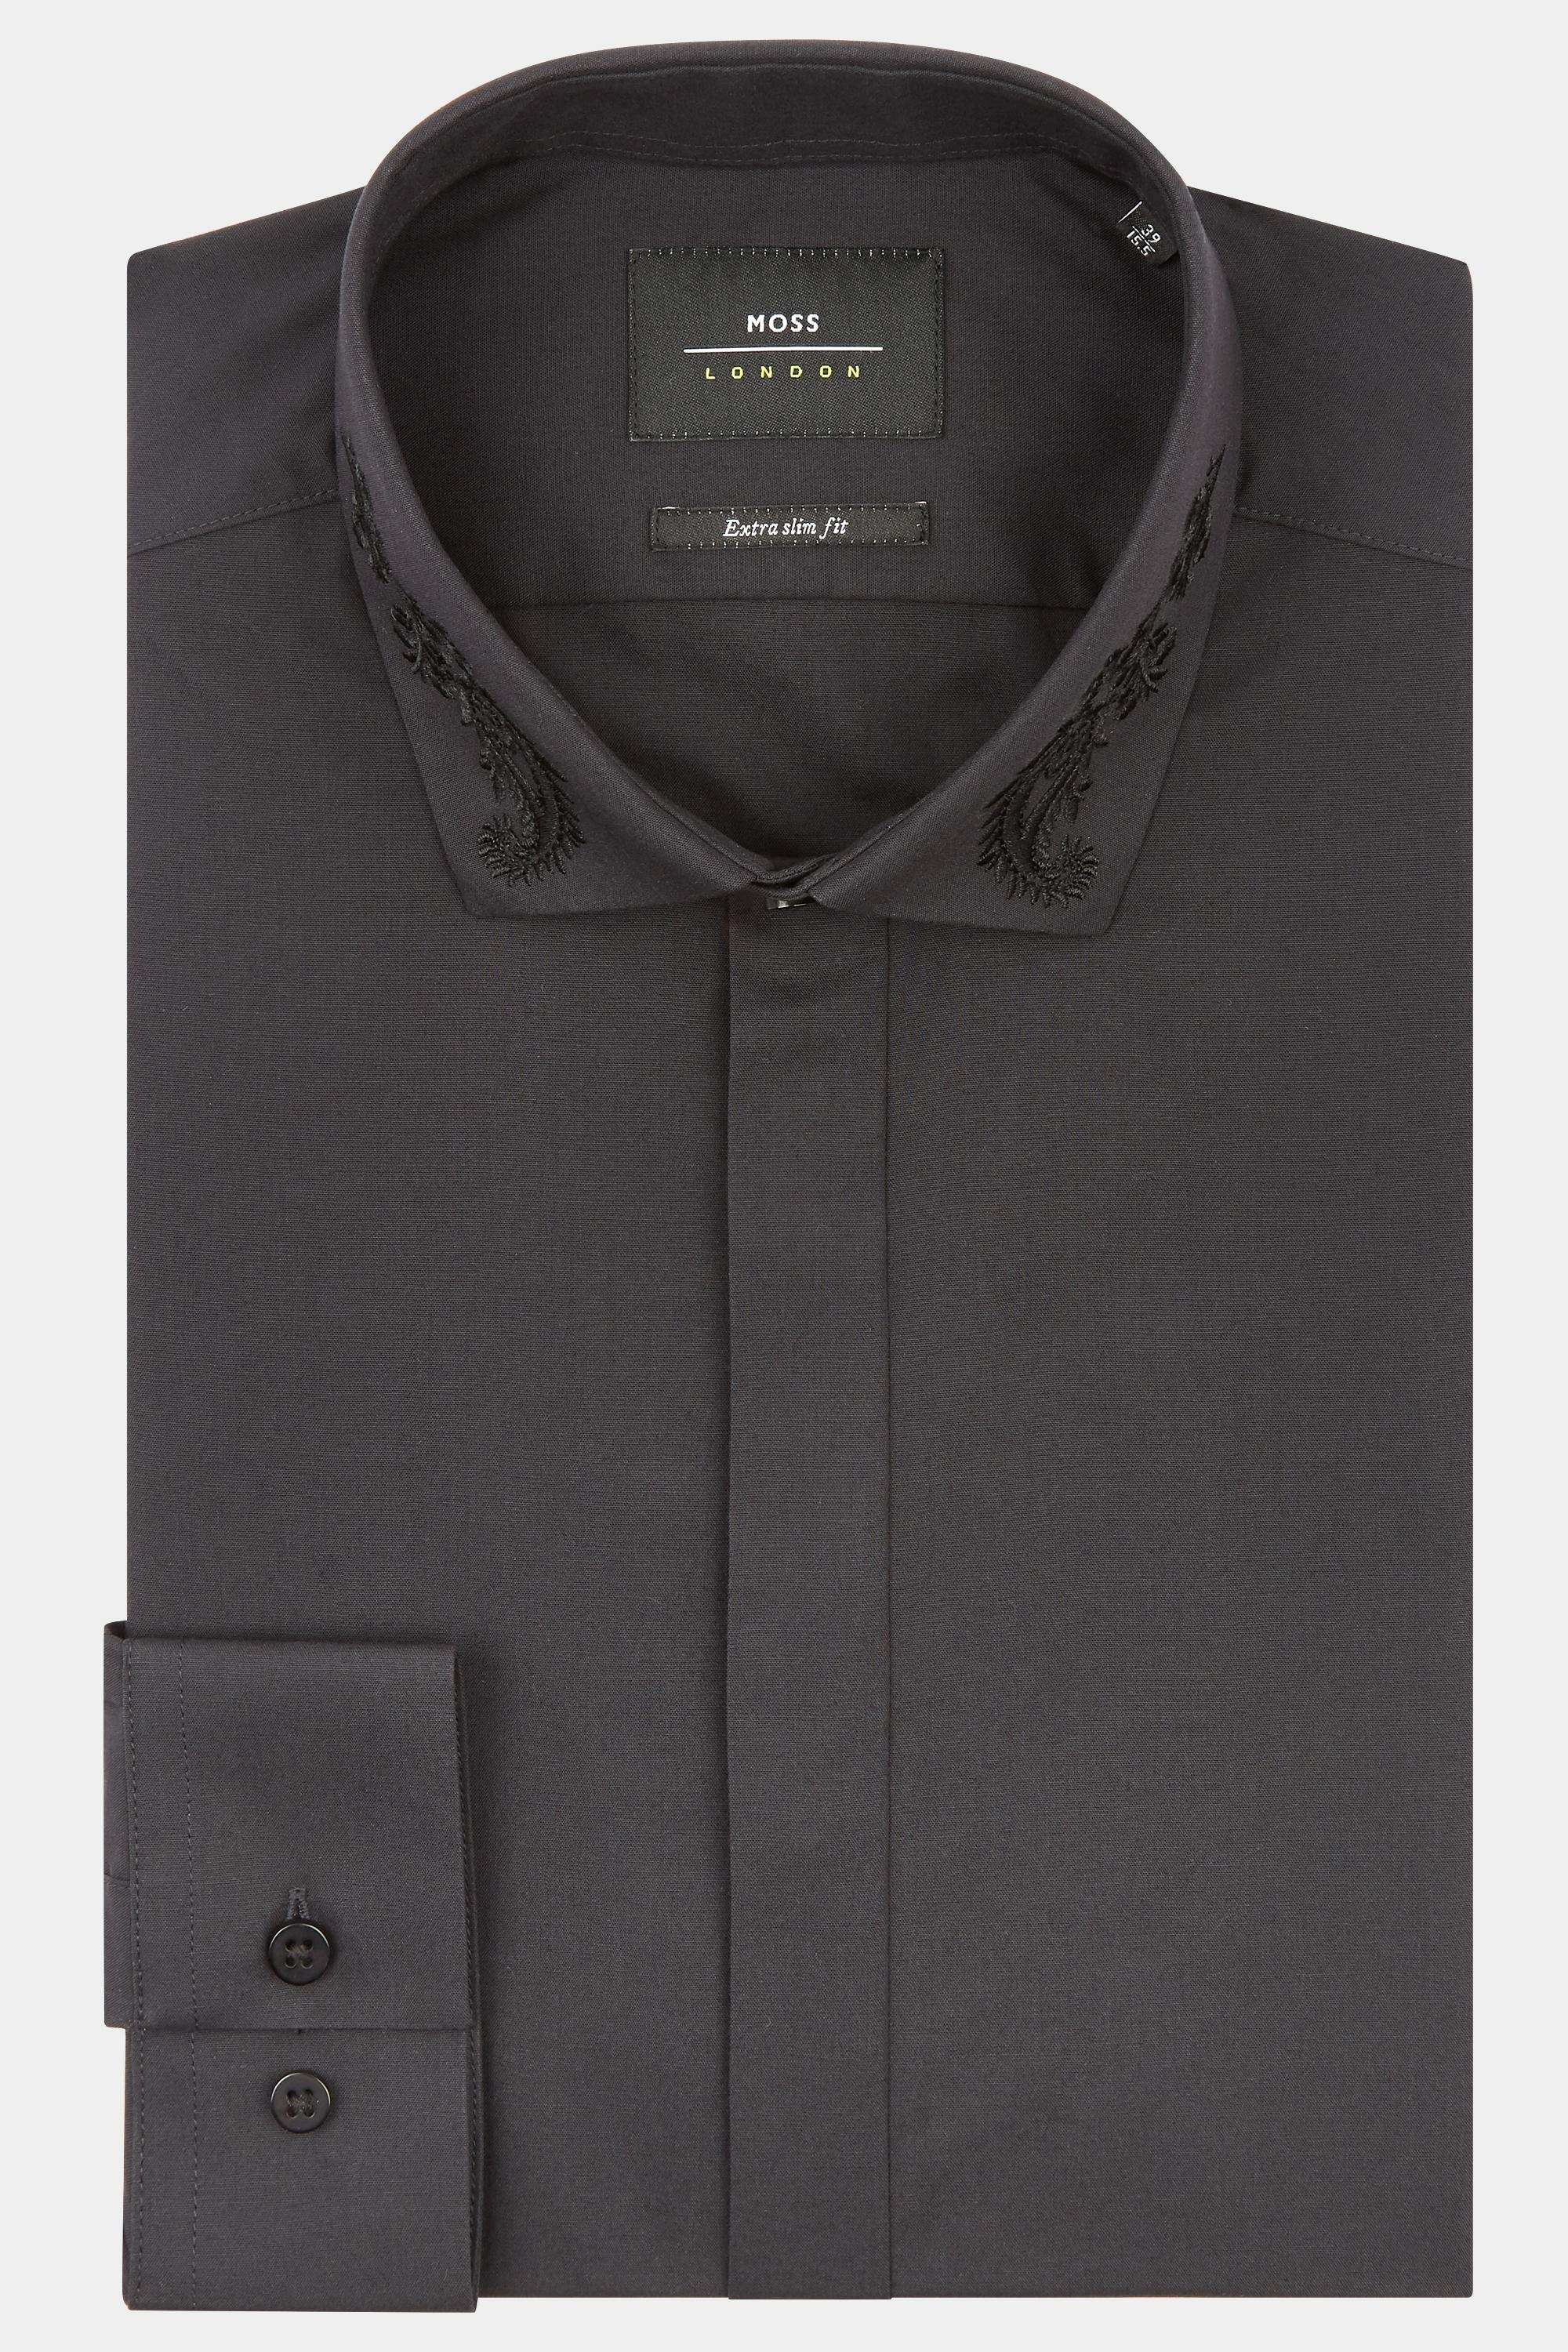 Lyst Moss London Extra Slim Fit Black Single Cuff Embroidered